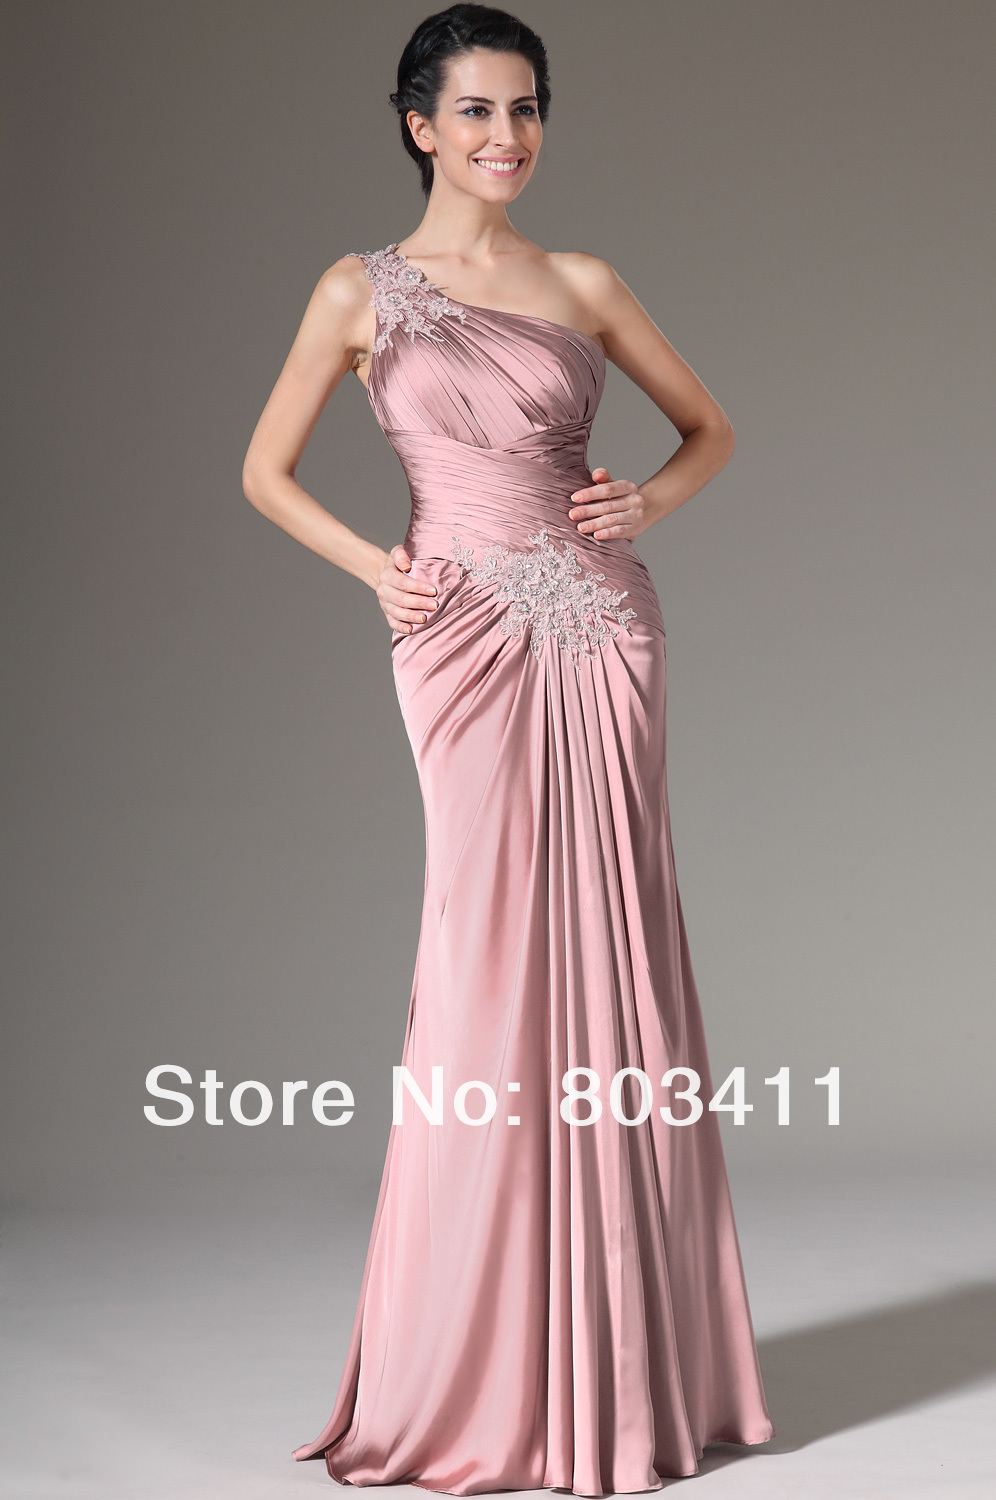 Freeshipping New Pink Crepe Satin Bolero 2 Pieces Formal Gown Mother ...